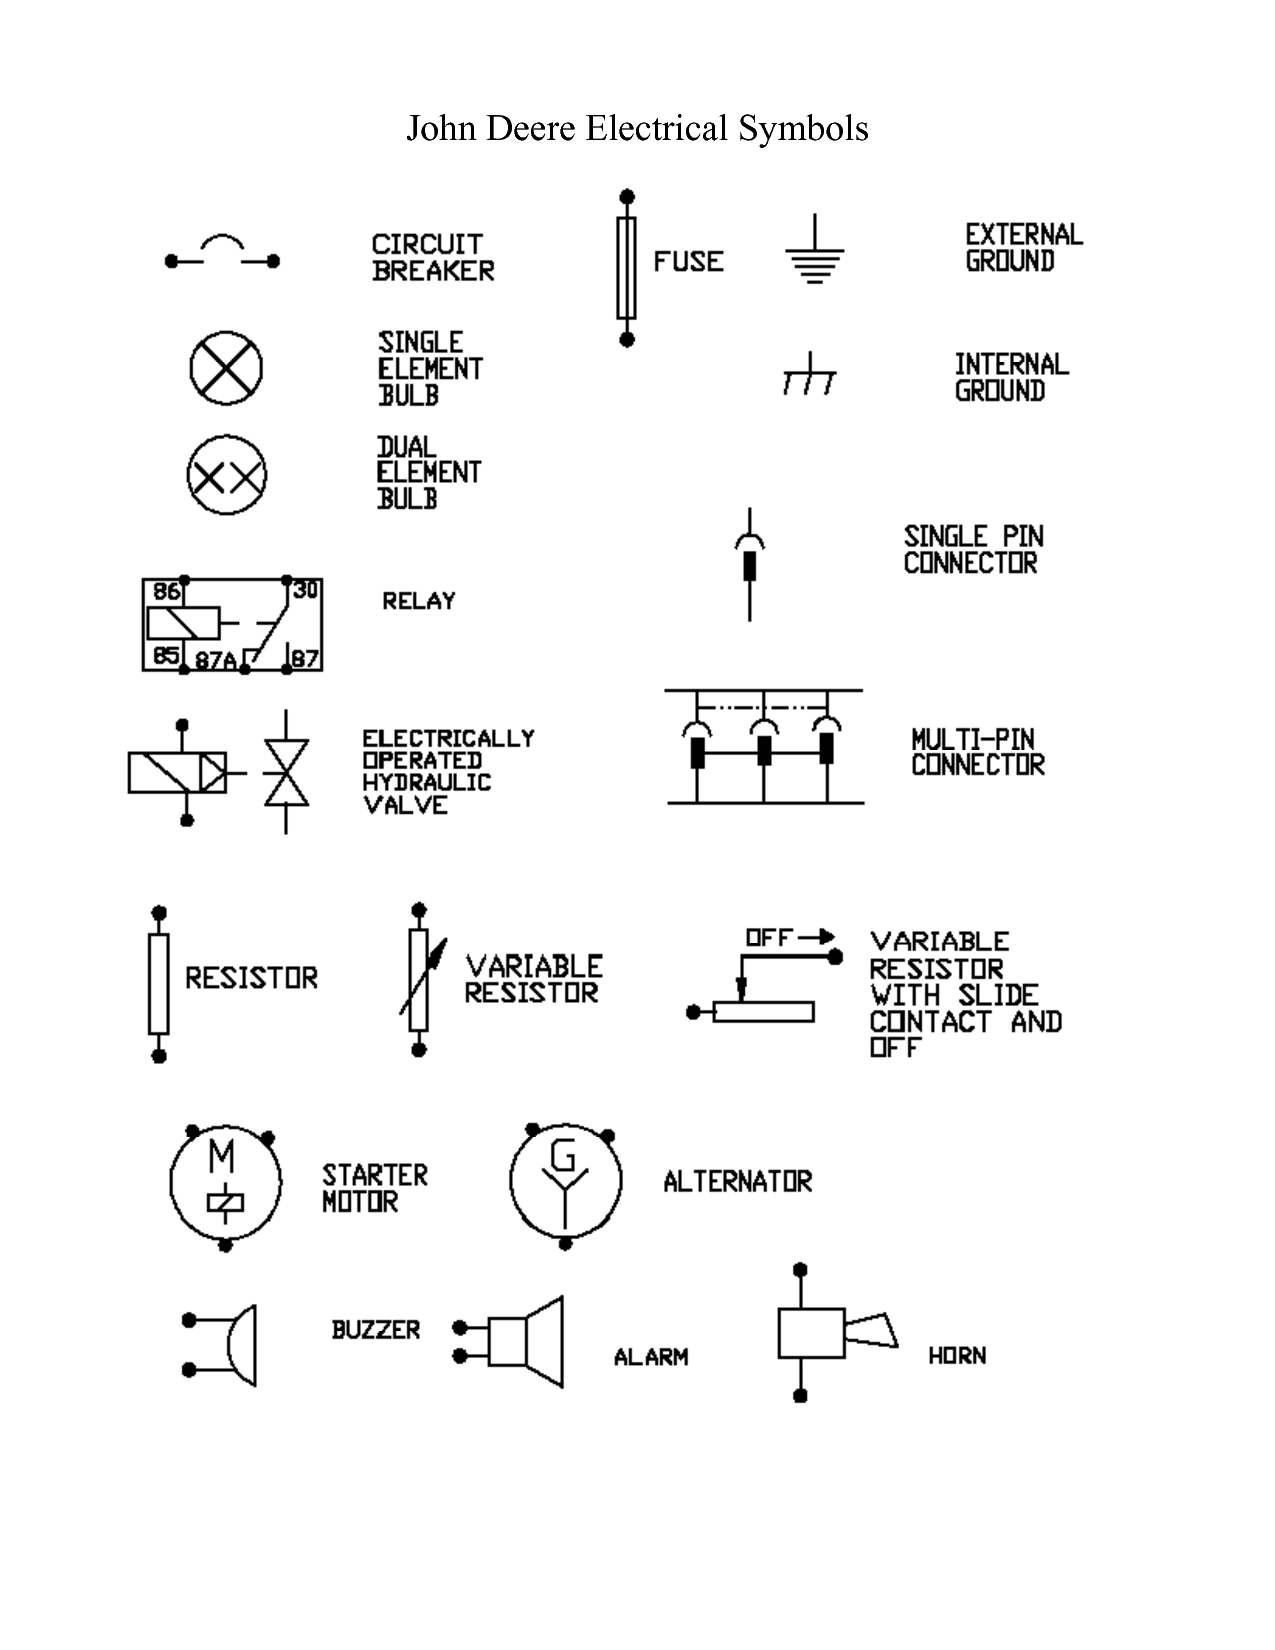 Pin on Pnuematic symbols Fuse Electrical Symbol on electrical power symbol, electric breaker symbol, electrical diagram symbols, speed sensor symbol, led electrical symbol, electrical schematic key, electrical logo symbol, electrical cap symbol, nonmetallic-sheathed wire symbol, electrical drawing symbols construction, electrical pothead symbol, electrical transformer symbol, electric coil symbol, electrical panel symbol, electrical fire extinguisher symbol, electrical outlet symbol, electrical conduit symbol, contactor symbol, high voltage transformer symbol, electric motor symbol,